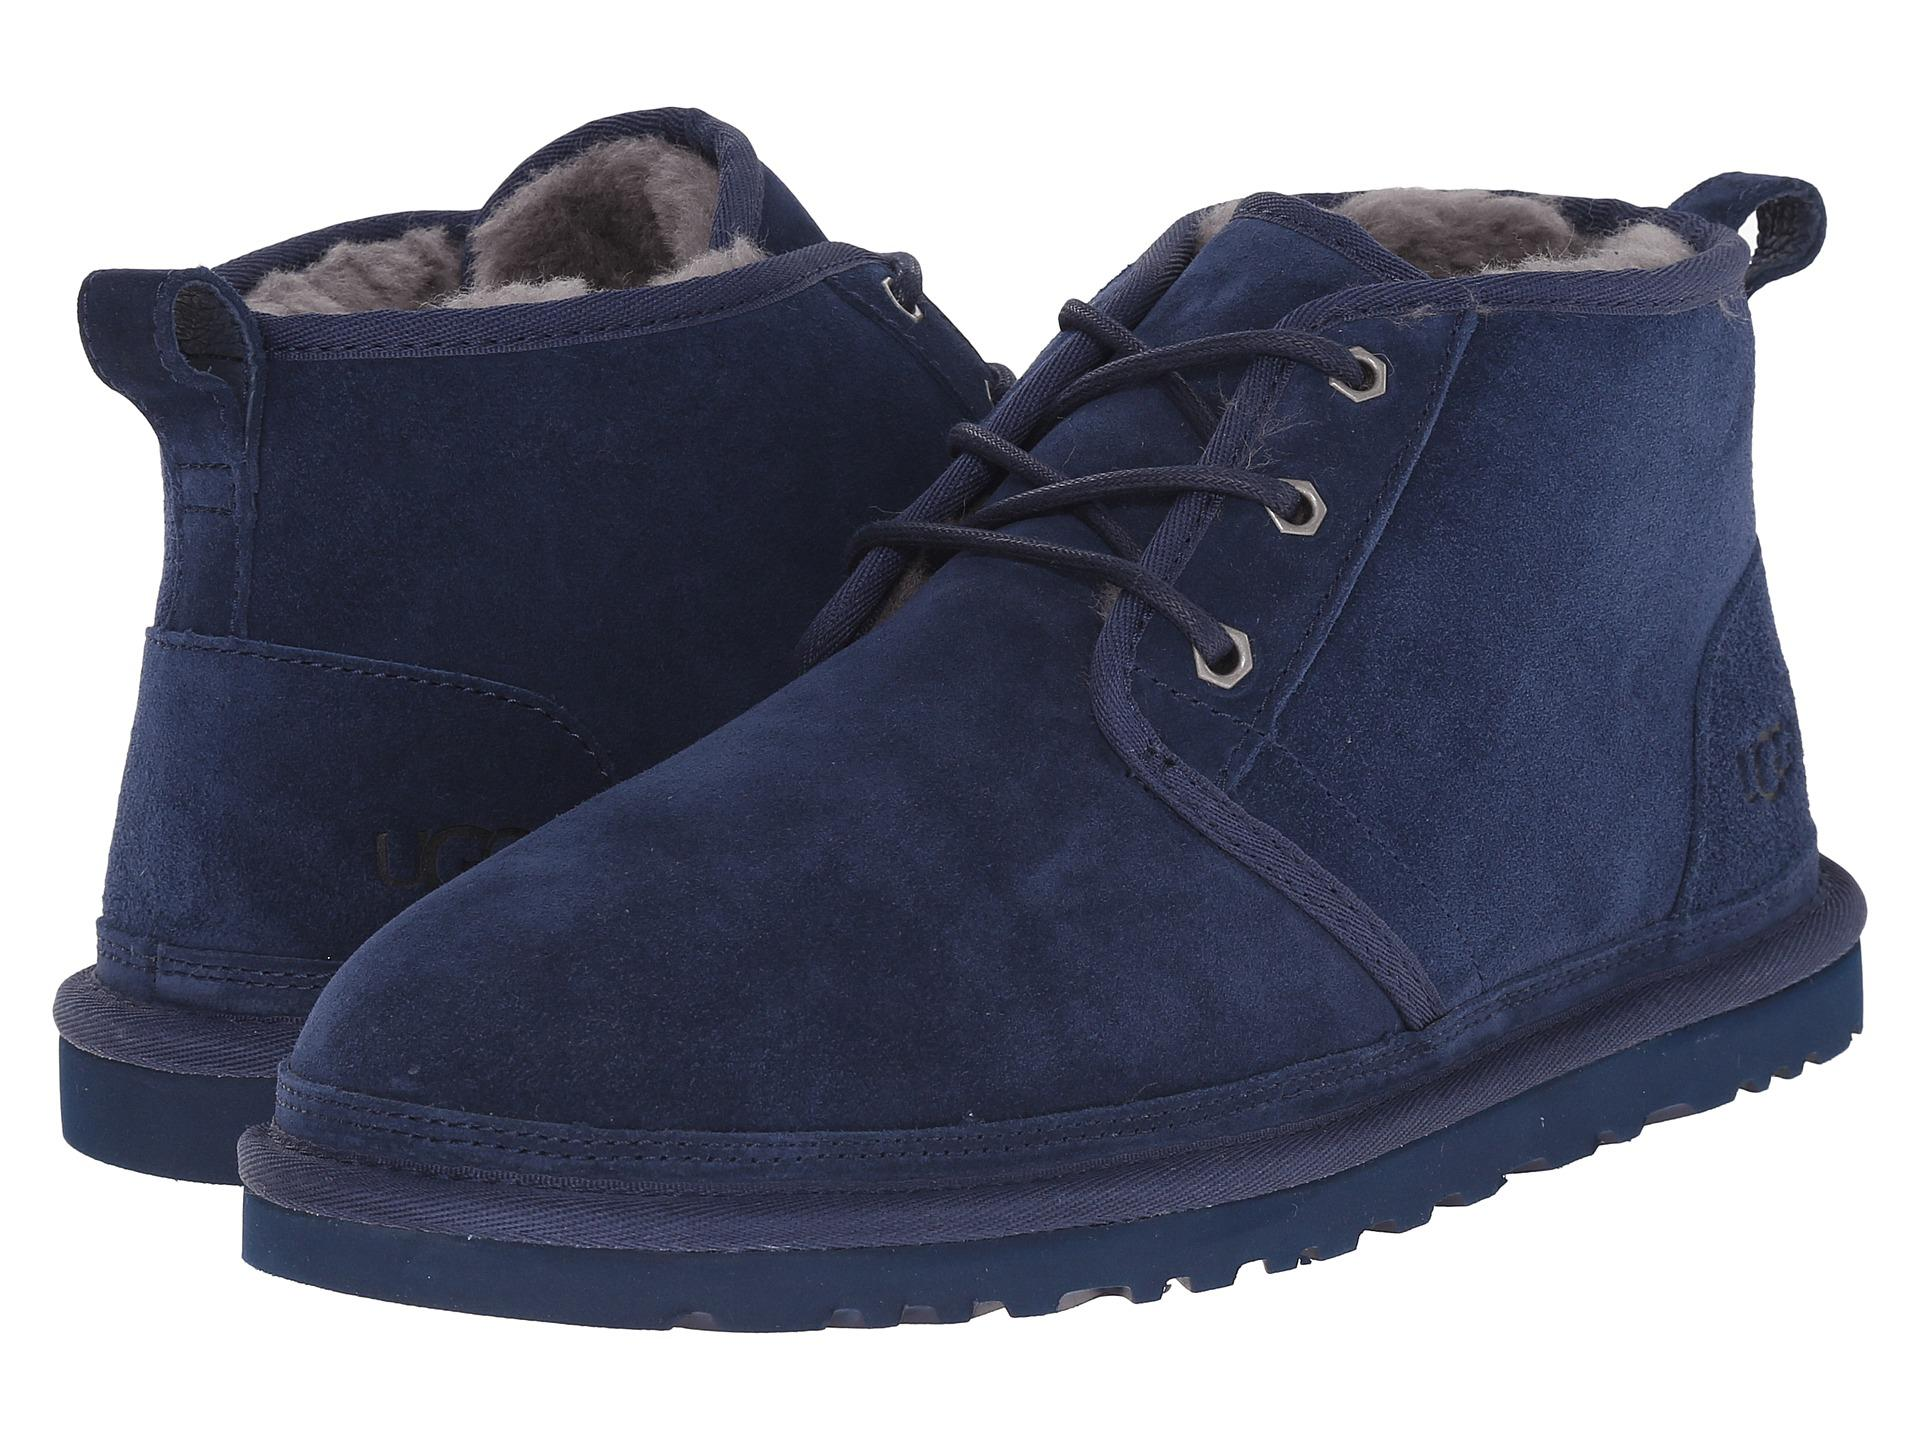 Ugg Neumel In Blue For Men Lyst